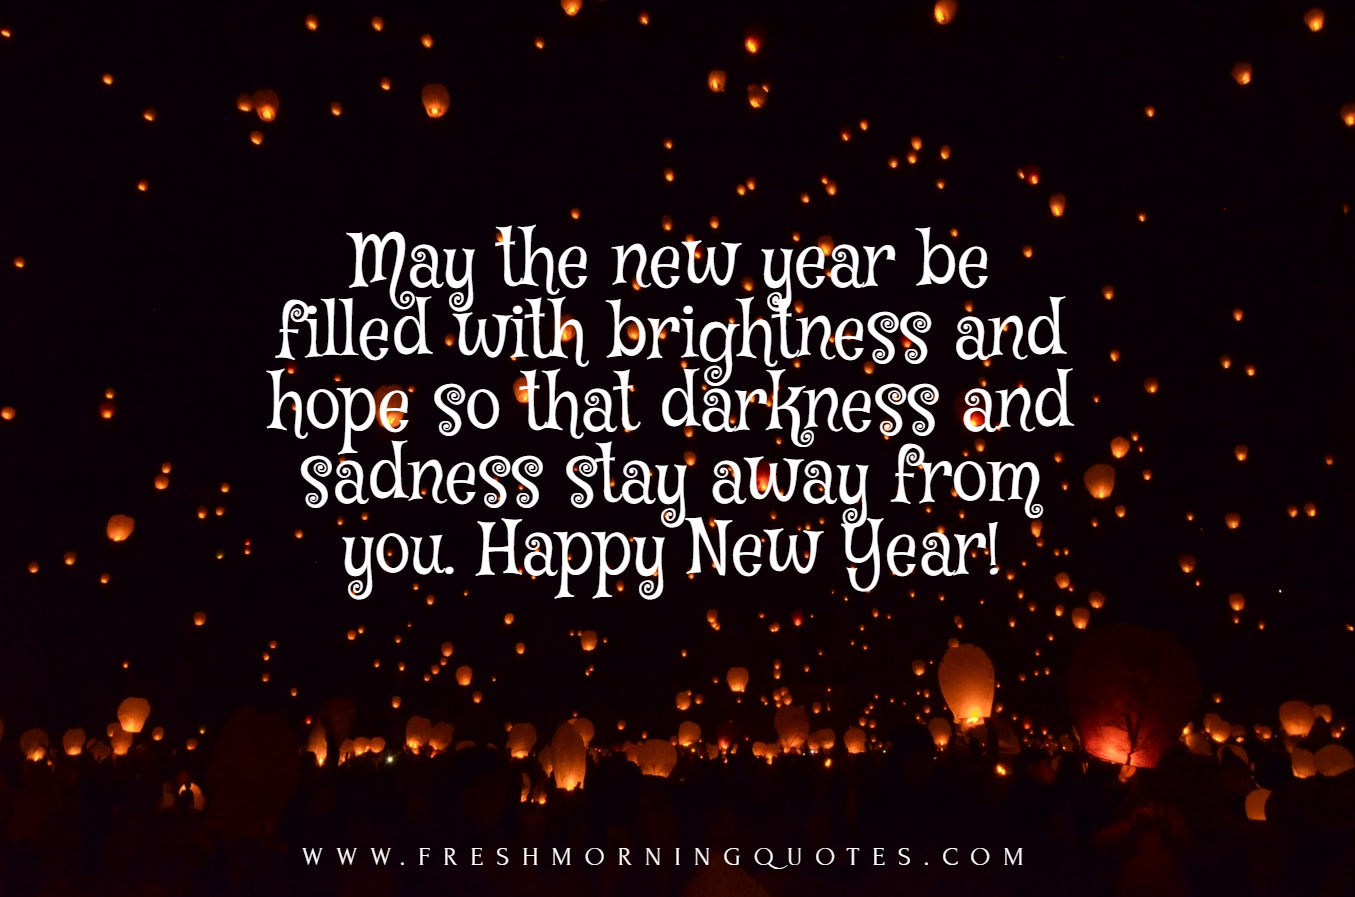 may this new year fill with brightness and hope